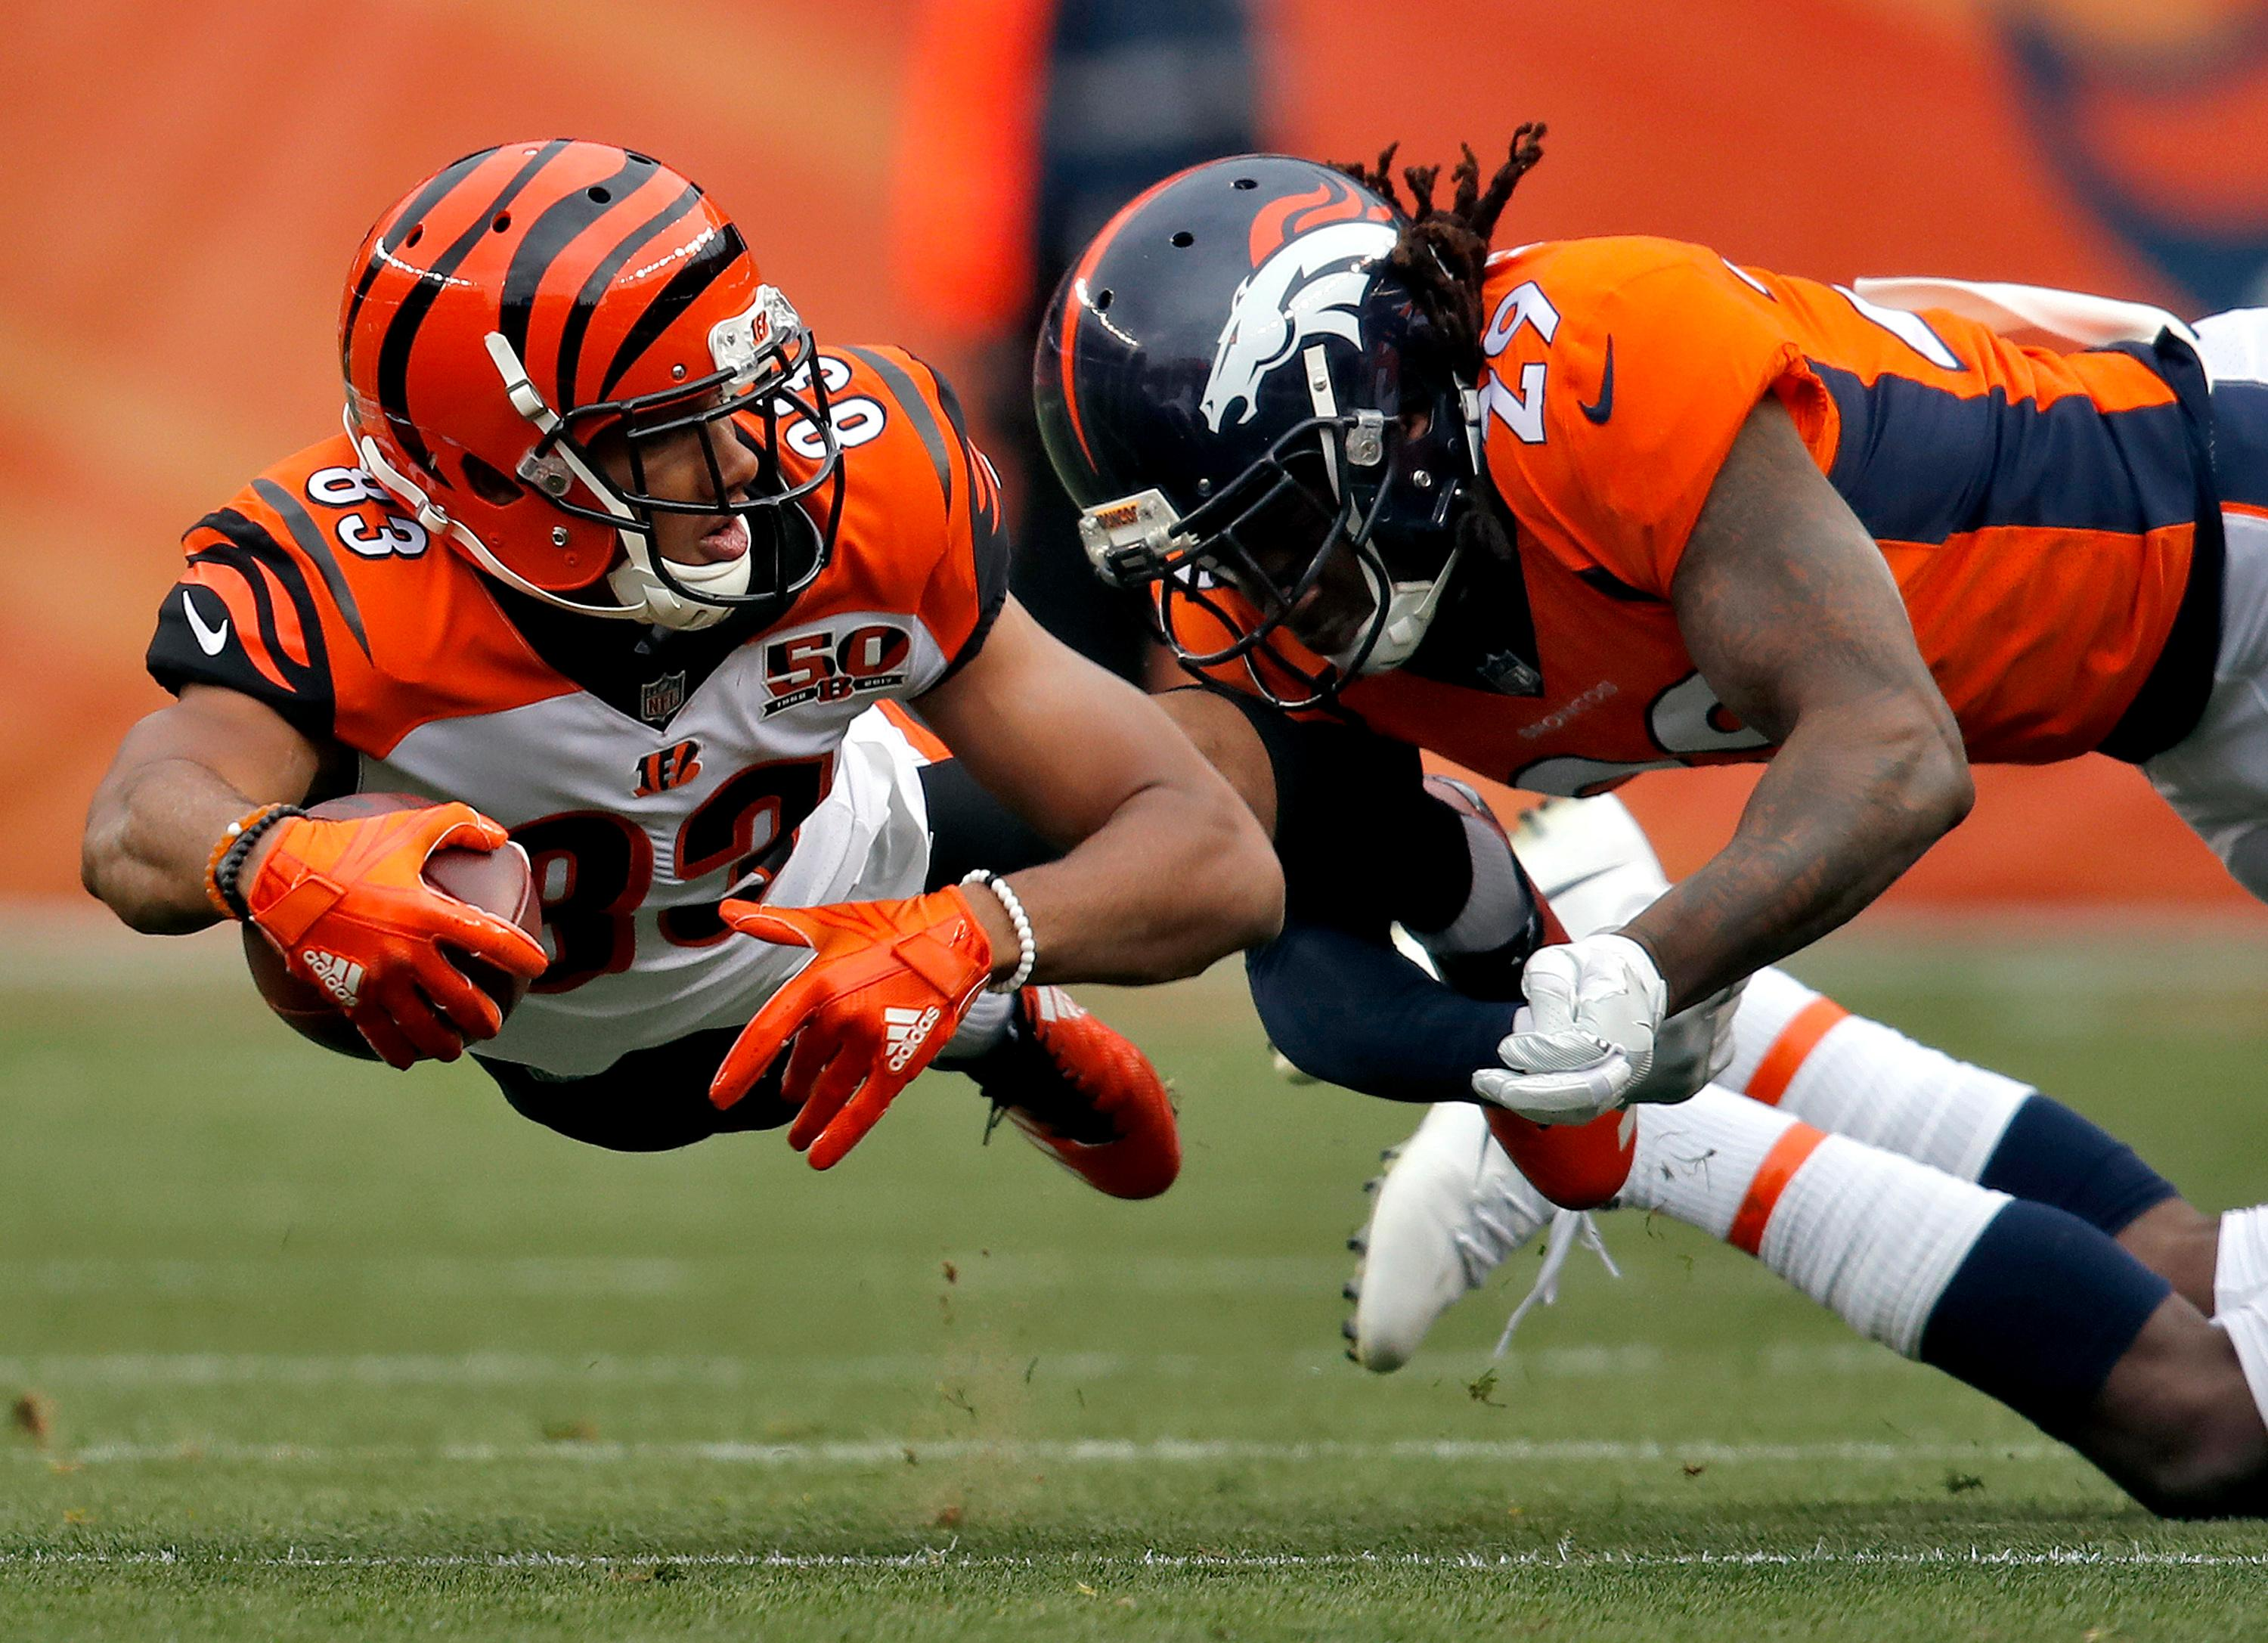 Cincinnati Bengals wide receiver Tyler Boyd (83) lunges for yards as Denver Broncos free safety Bradley Roby (29) makes the hit during the first half of an NFL football game, Sunday, Nov. 19, 2017, in Denver. (AP Photo/David Zalubowski)